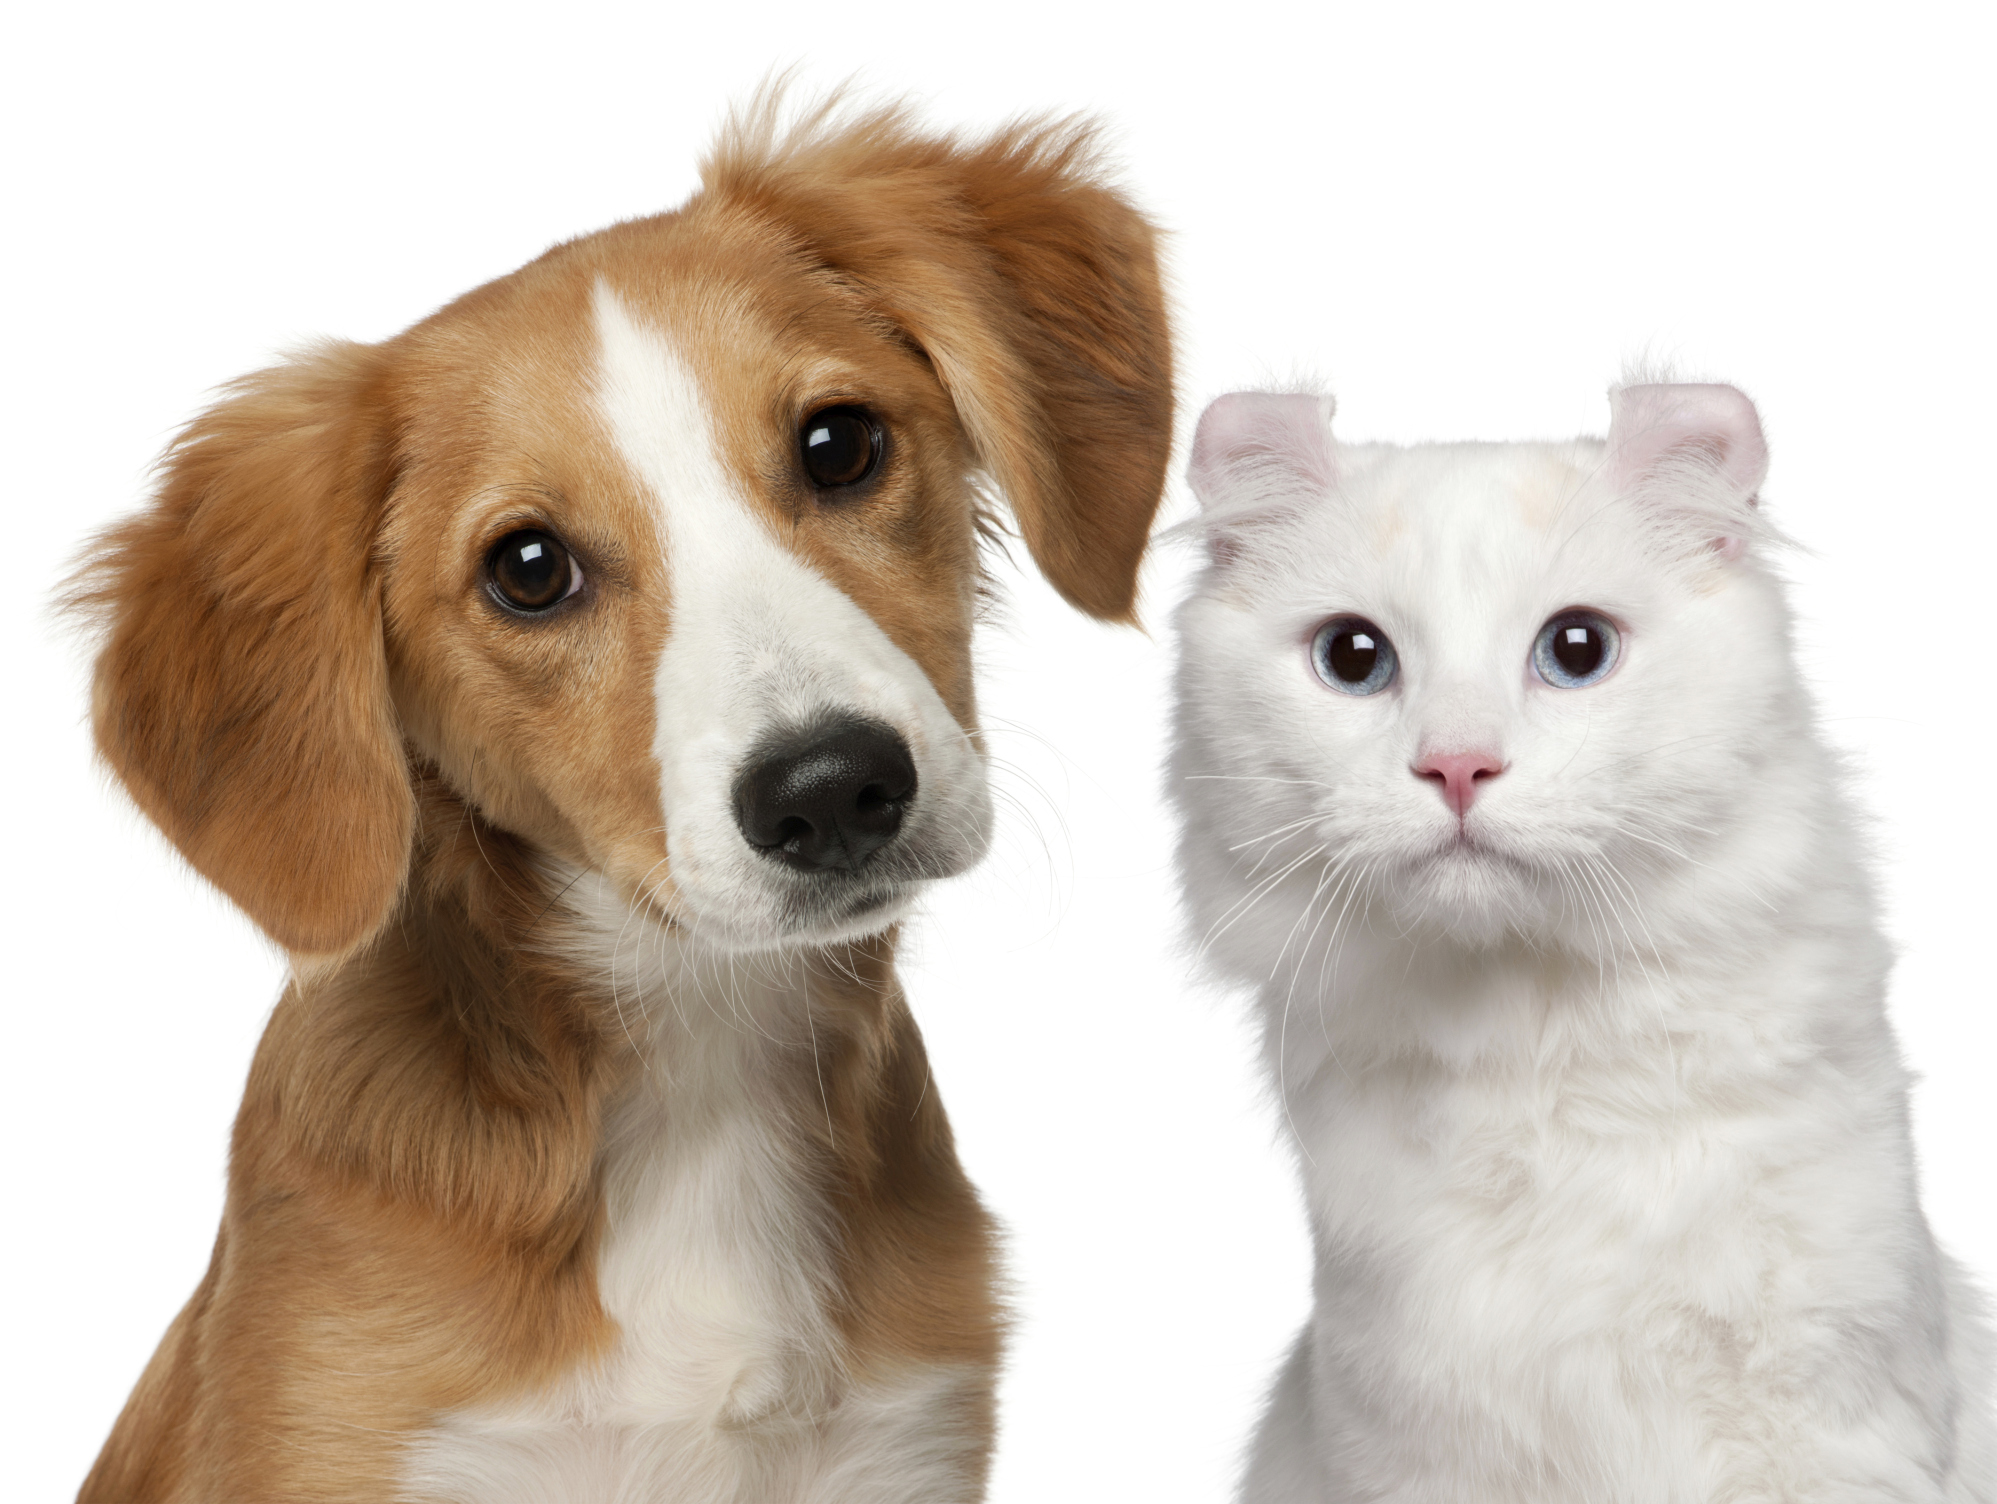 Pet Insurance - Is It Right for You?